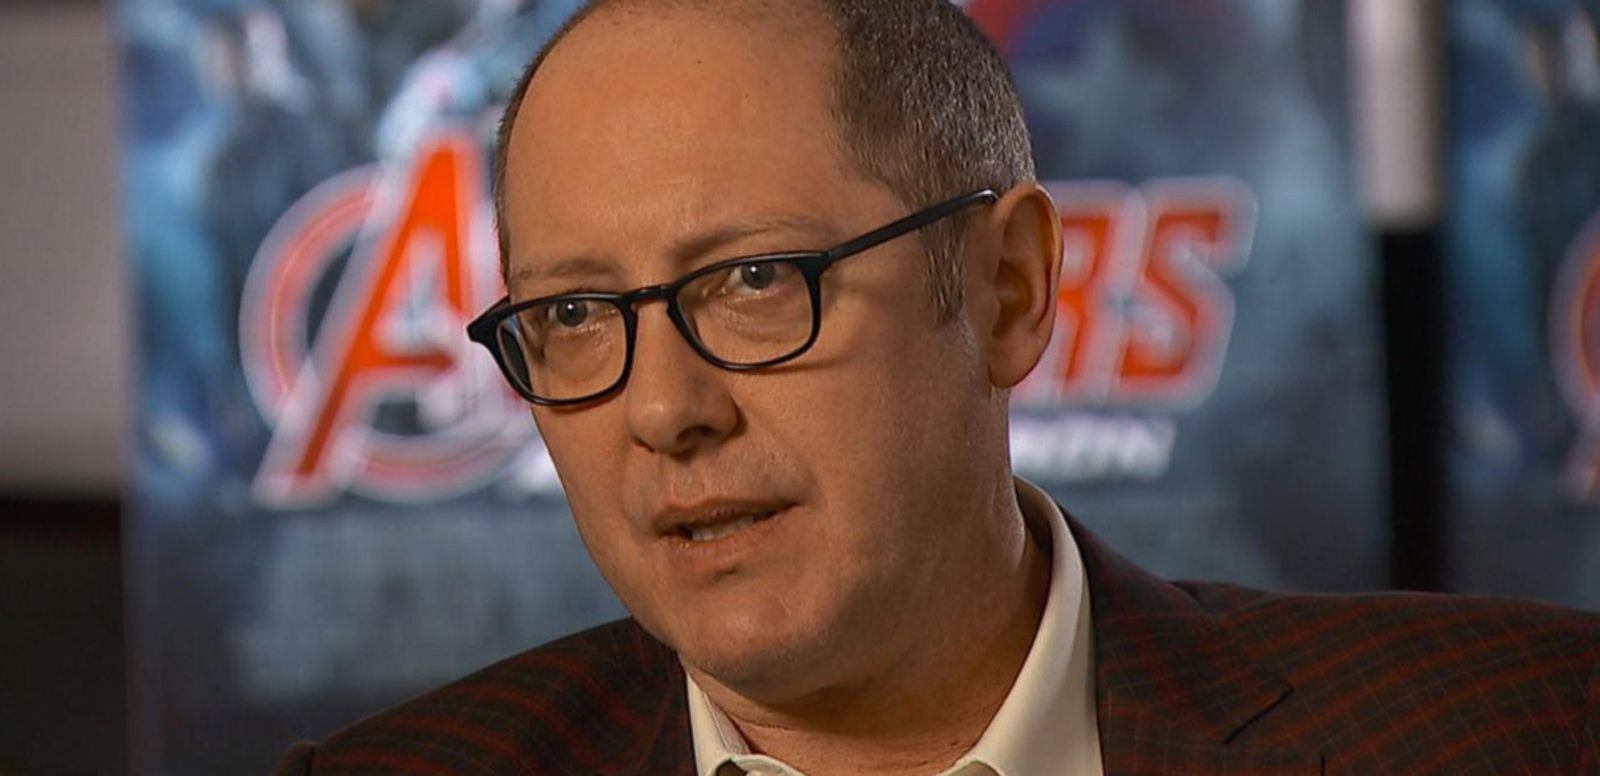 VIDEO: 'Avengers: Age of Ultron' James Spader on Playing the Villain